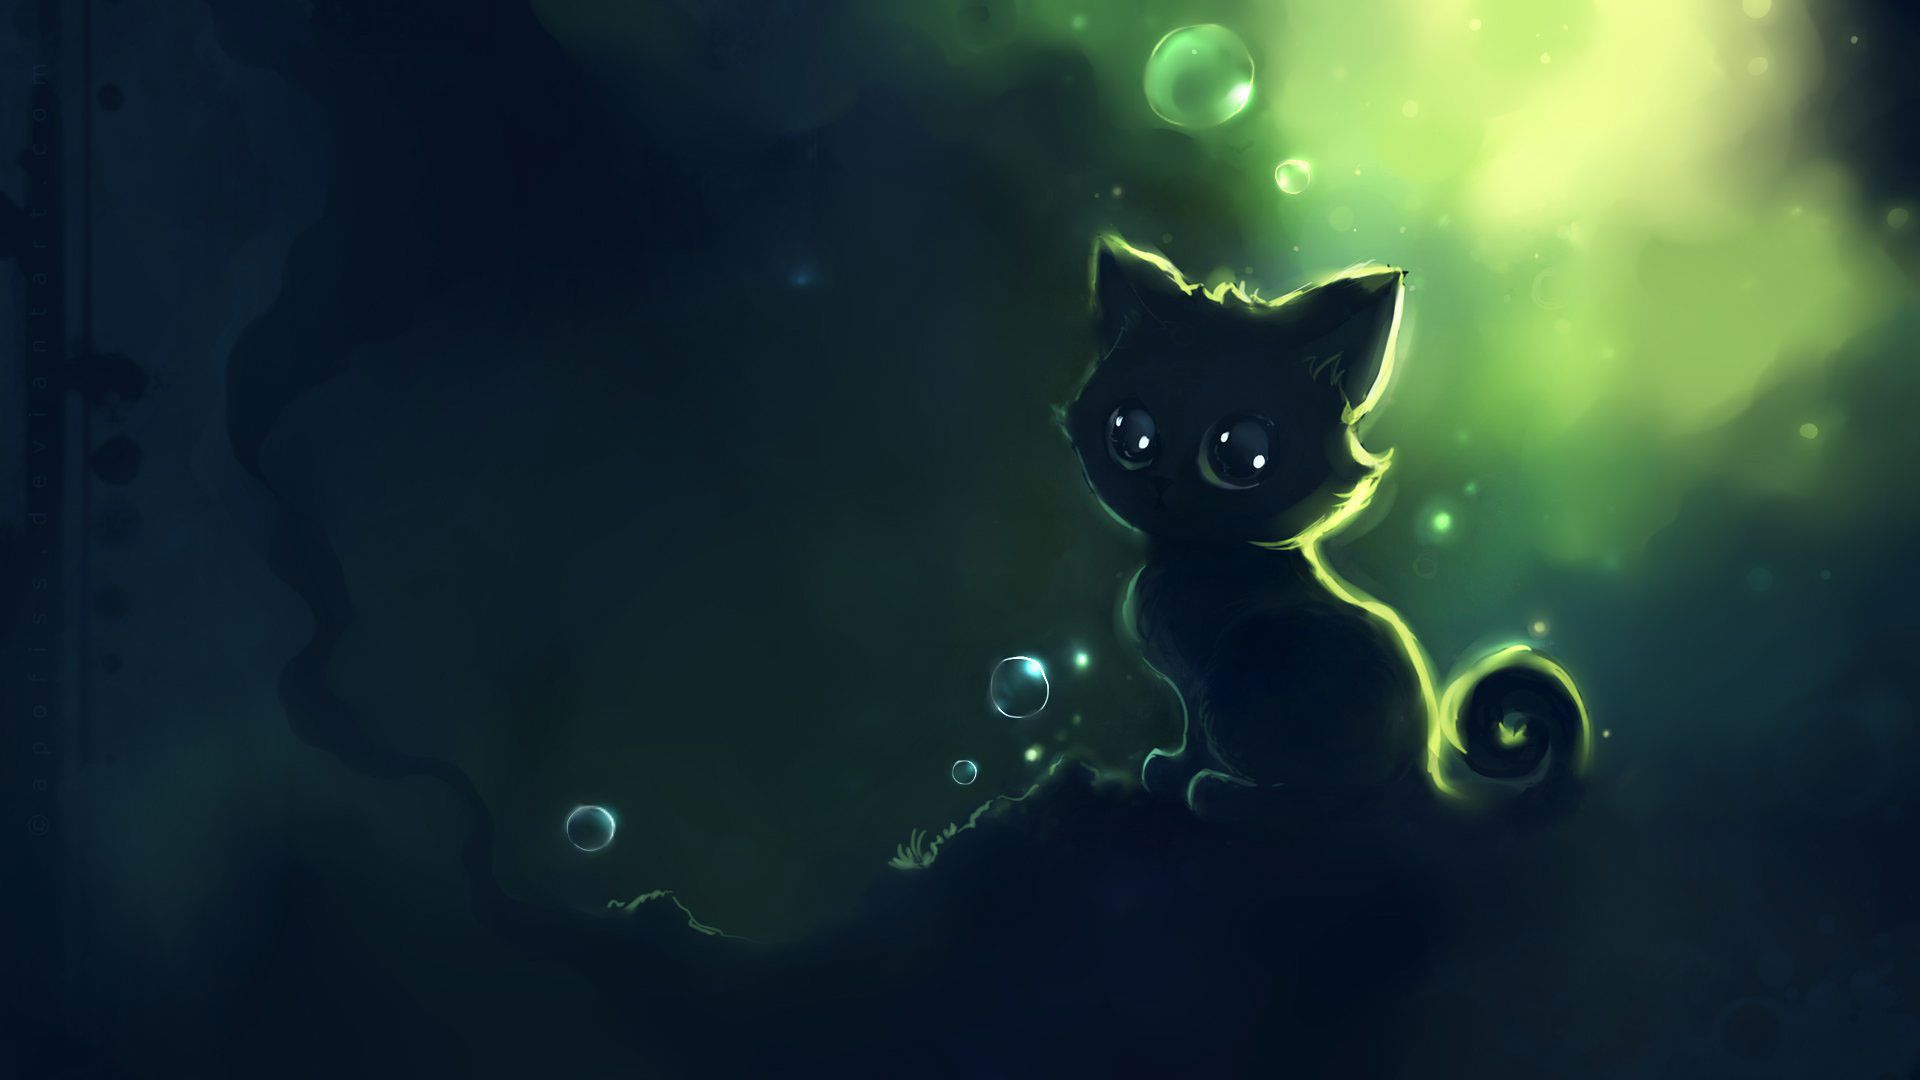 1920x1080 Cartoon Wallpapers Images Hd 1080p Cute Anime Cat Cat Art Anime Animals